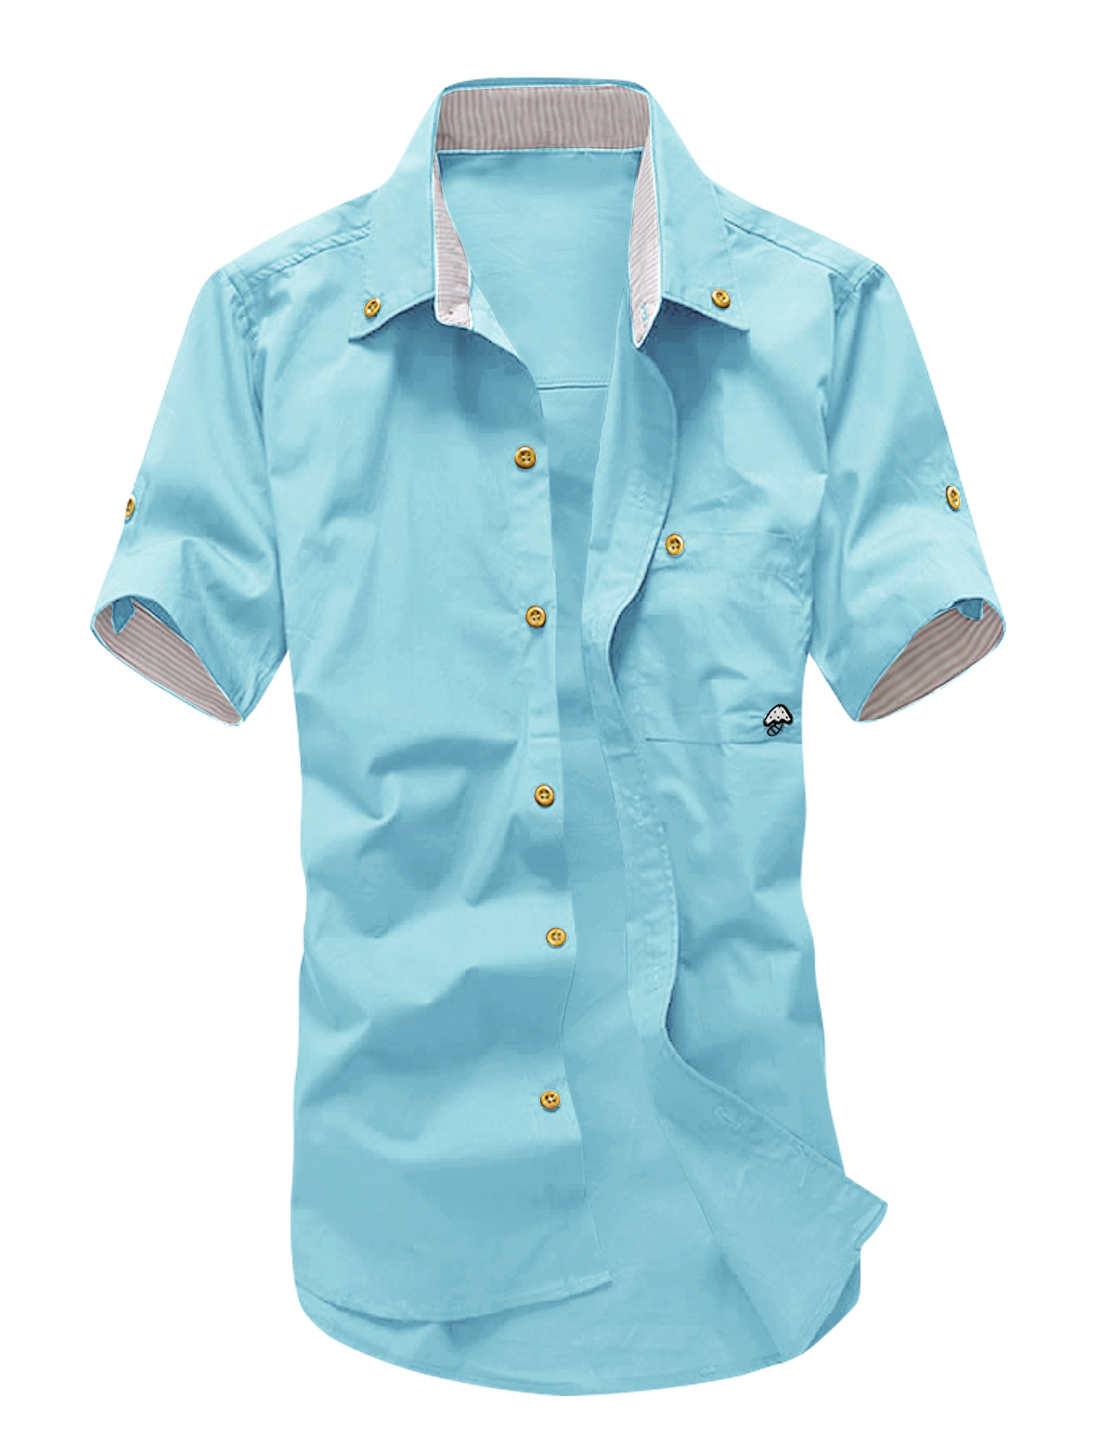 Man Roll Up Sleeves Embroidered Button Down Shirts Sky Blue M